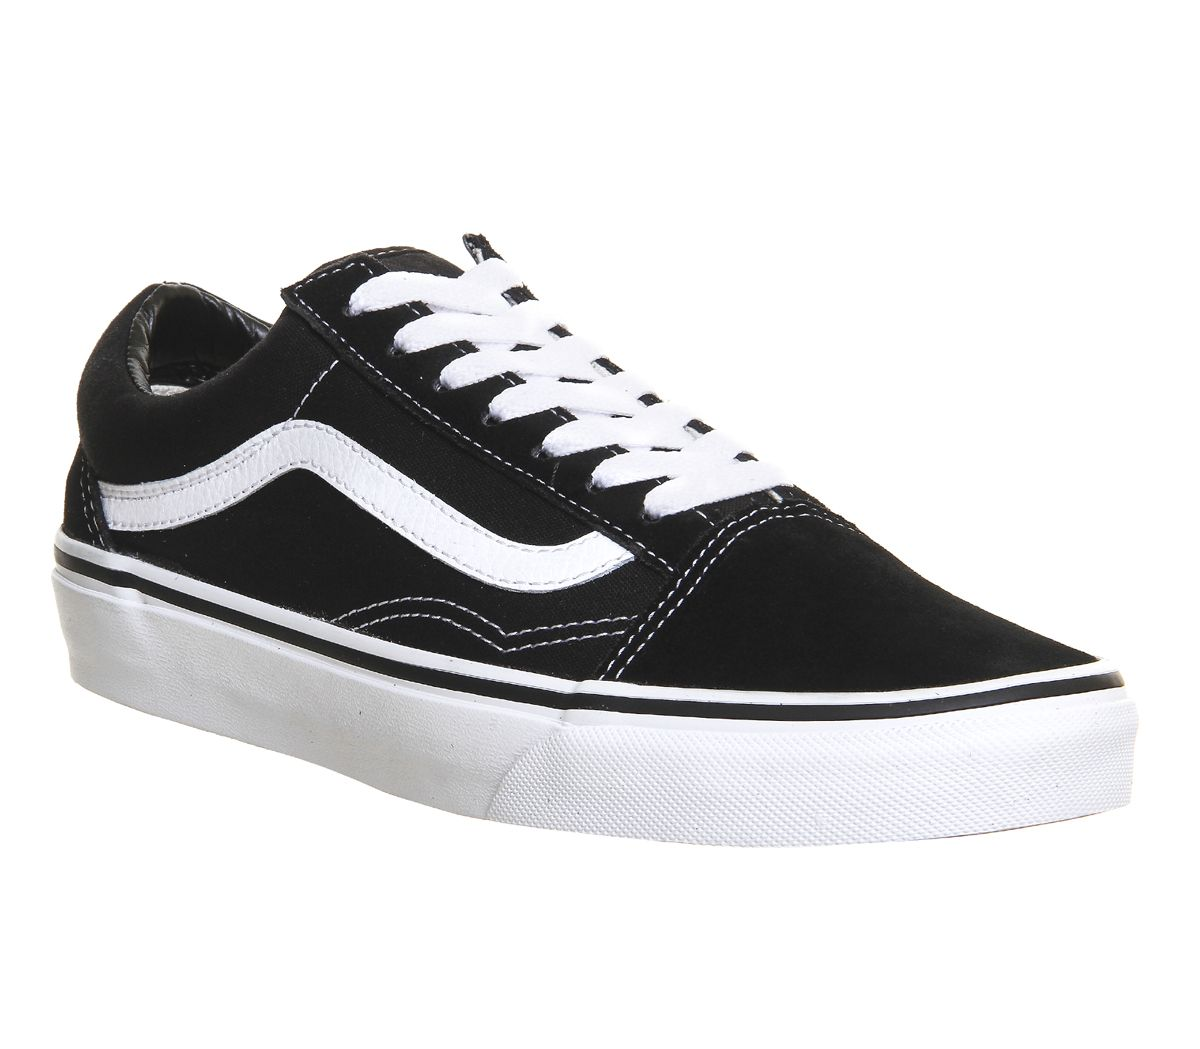 3f2fdf1011 Vans Old Skool Trainers Black - Unisex Sports